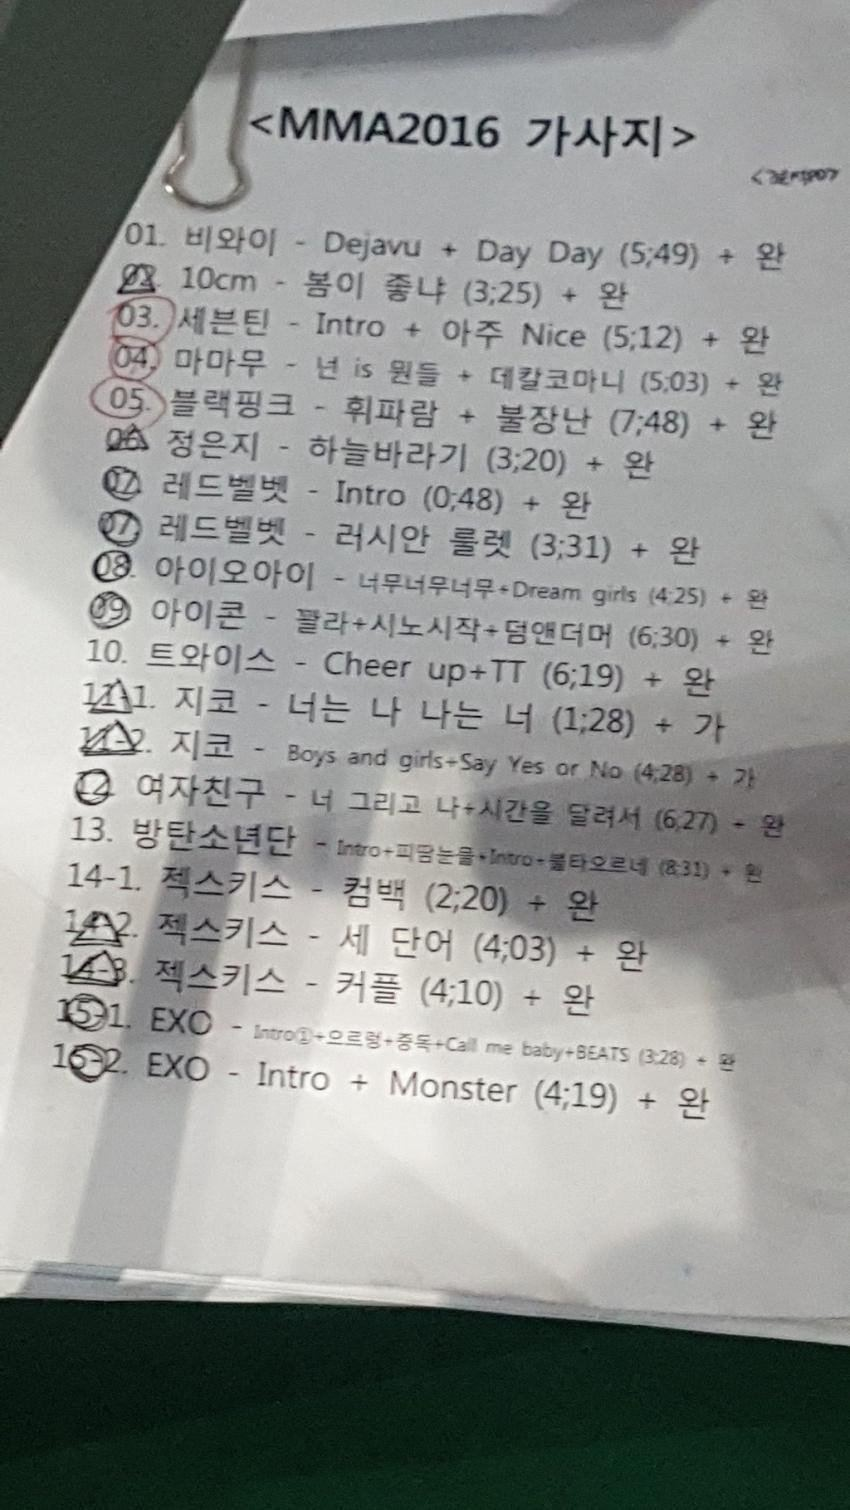 Melon Music Awards performance lineup and timing. / Source: Naver